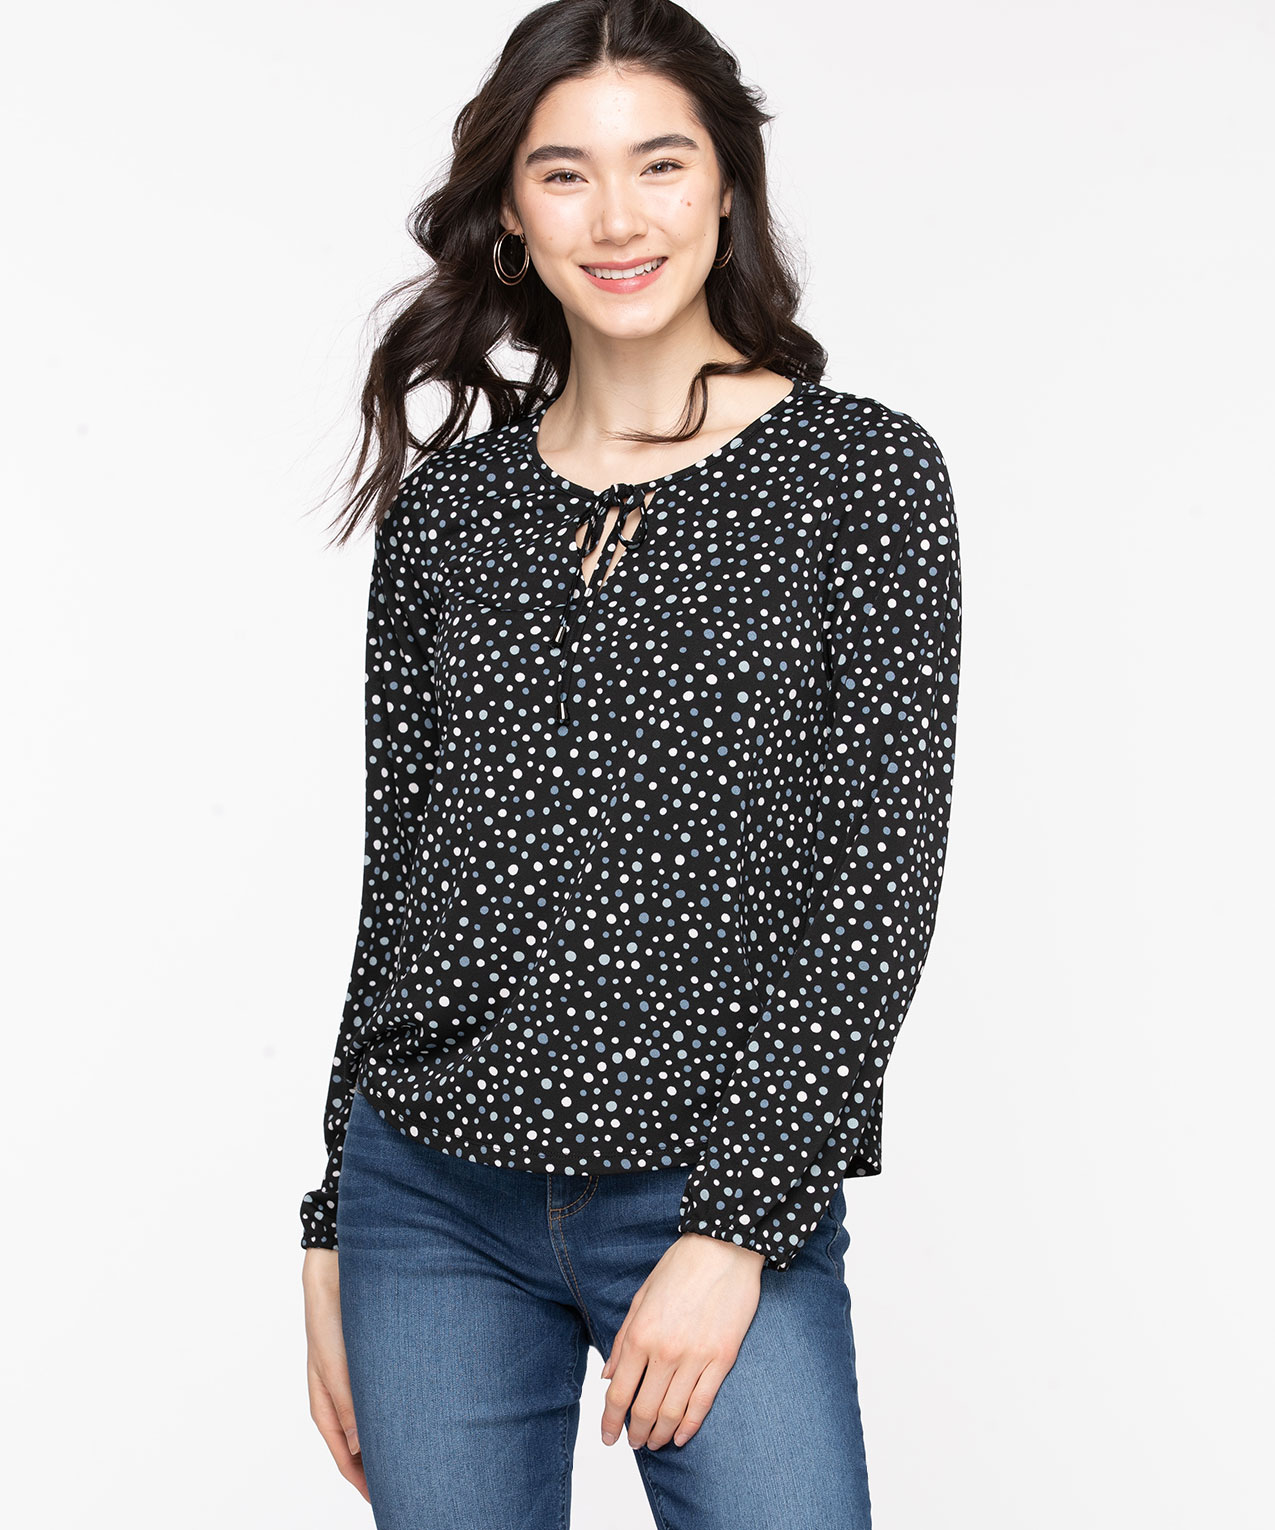 Patterned Peasant Style Top, Black/Dusty Blue Dots, hi-res